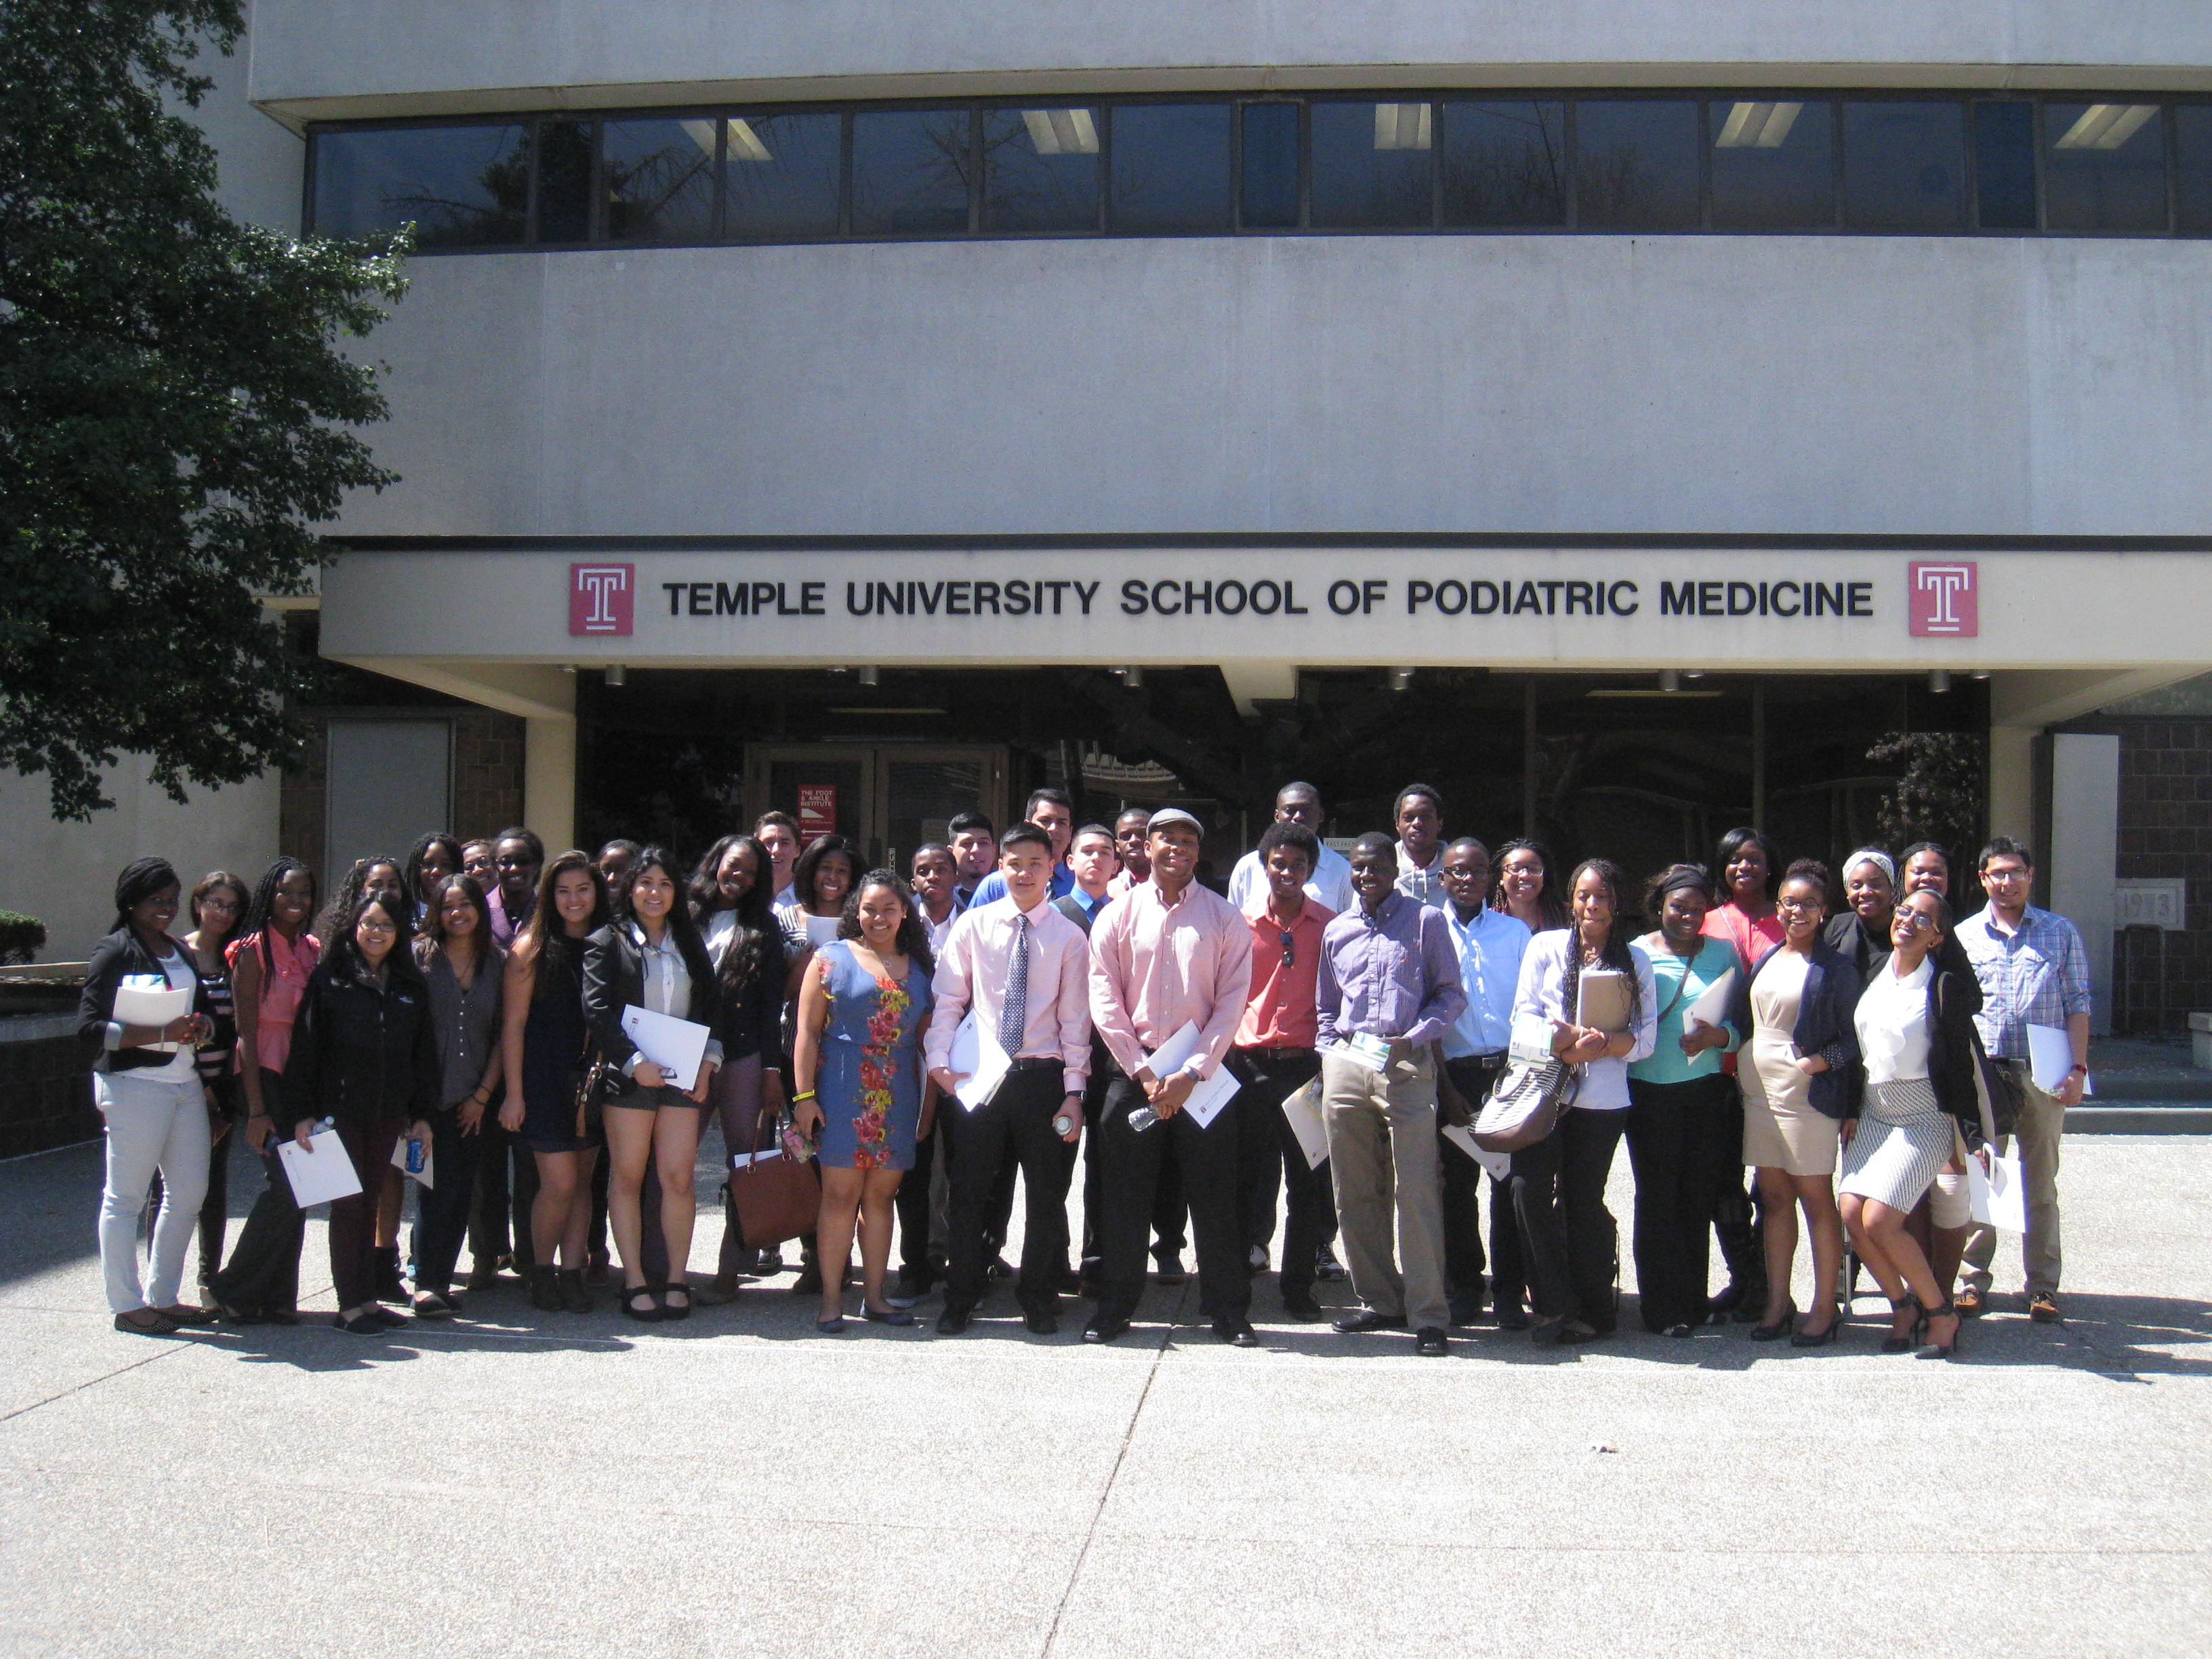 Temple University School of Podiatric Medicine - 2014